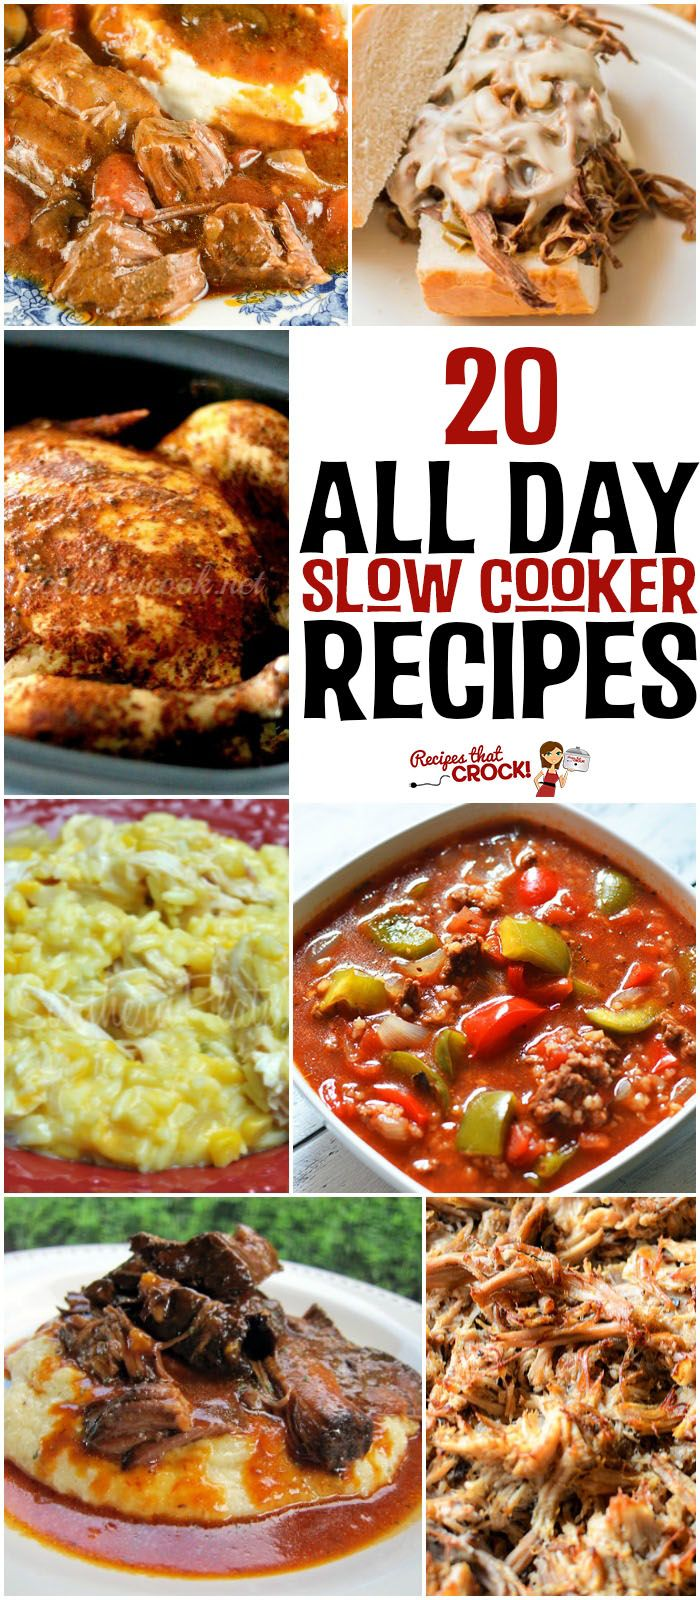 20 All Day Slow Cooker Recipes: Do you wish you had more ALL DAY slow cooker recipes that you fix in the morning and come home to a perfectly cooked meal? We have pulled together our favorite long cooking crock pot recipes and asked the best cooks we know to tell us theirs as well. Mississippi Roast, Pork Carnitas, Crock Pot Stuffed Pepper Soup, Slow Cooker Cheesy Chicken and Rice, BBQ Whole Chicken, Steak Tacos, Philly Cheesesteak and much, much more!